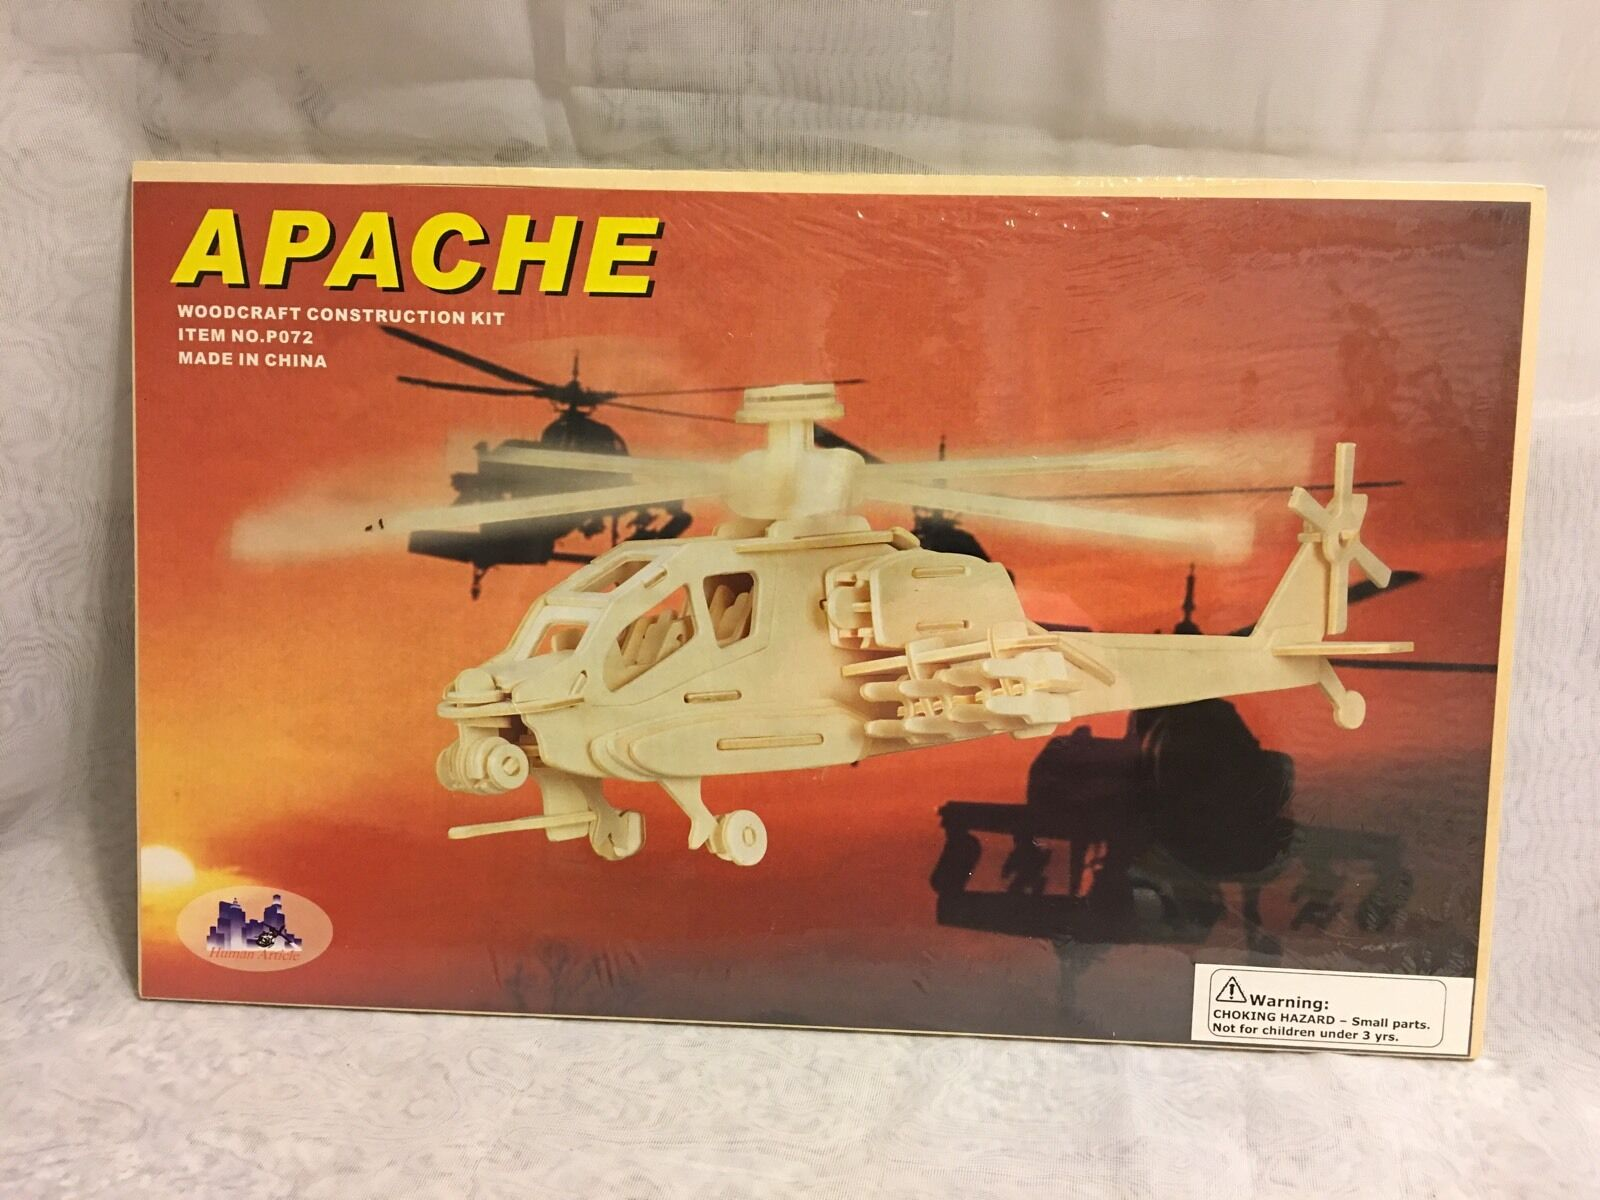 Woodcraft Construction Kit Apache Assembly Helicopter 3D P072 Military New